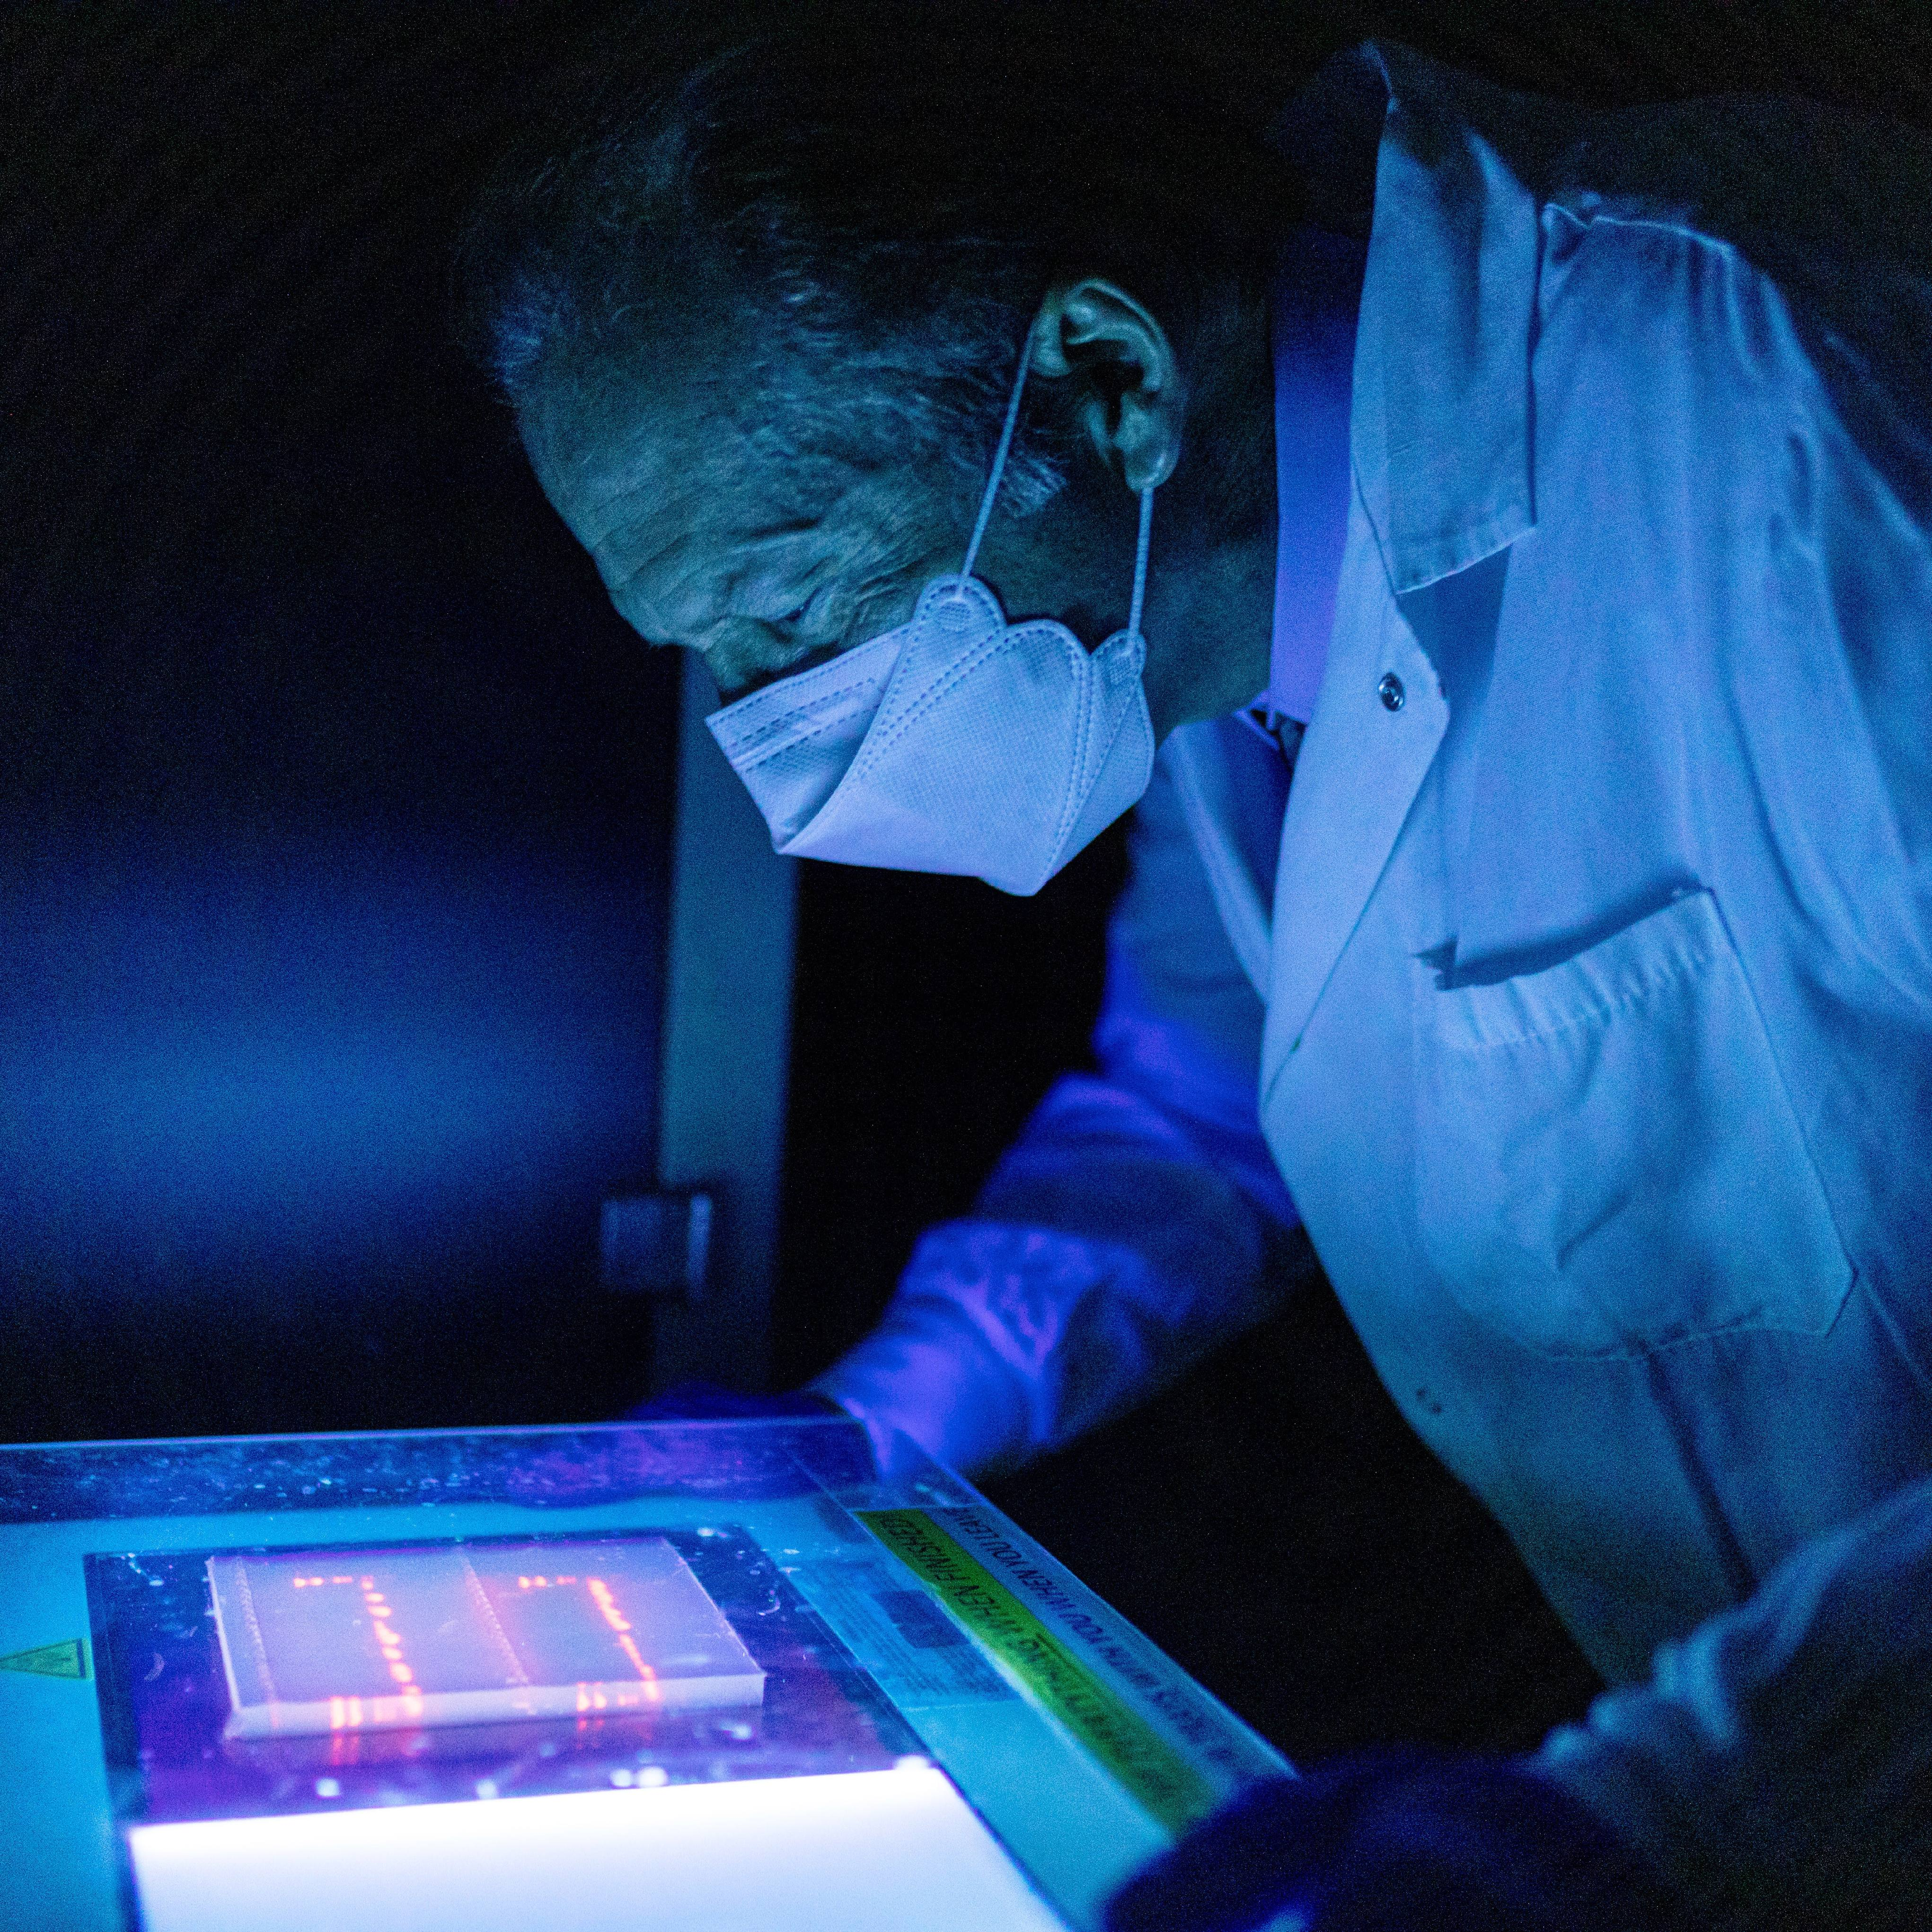 Researcher Michael Barry, Ph.D., in a lab looking at cut pieces of DNA in a blue light to see if they are the correct size of the viral genes the team wants to use.